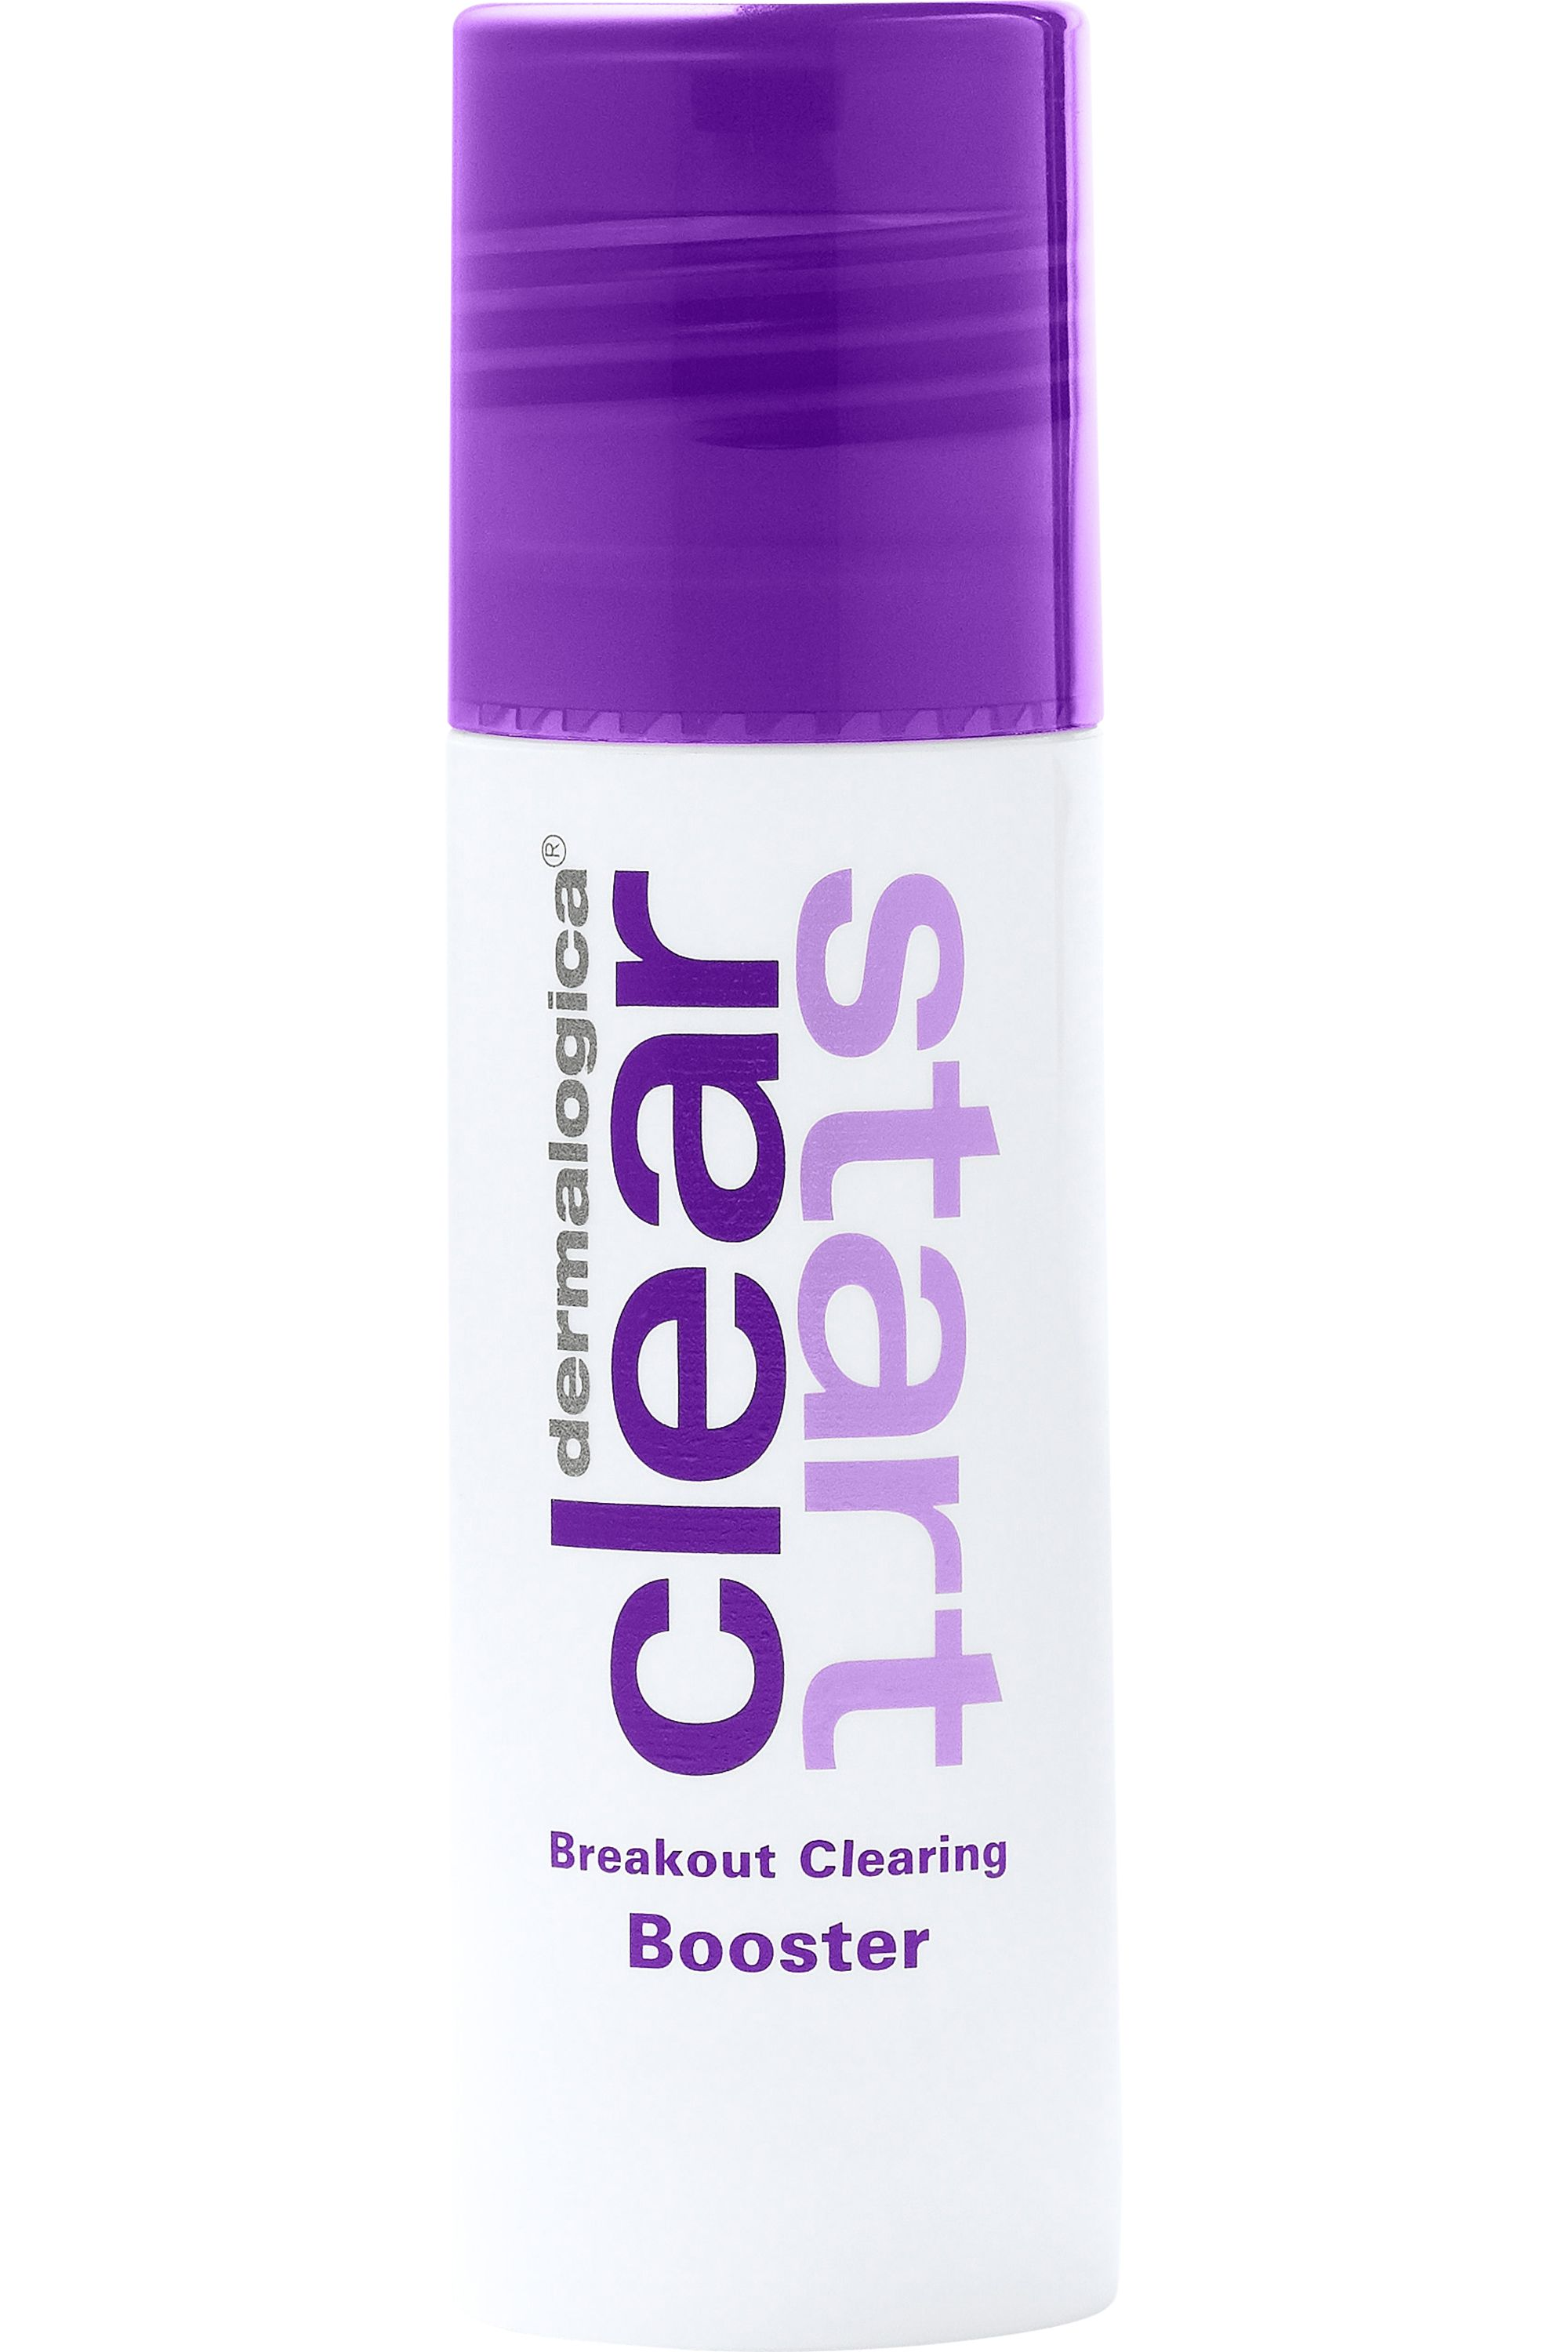 Blissim : Dermalogica - Soin express anti-bouton Clear Start Breakout Clearing Booster - Soin express anti-bouton Clear Start Breakout Clearing Booster